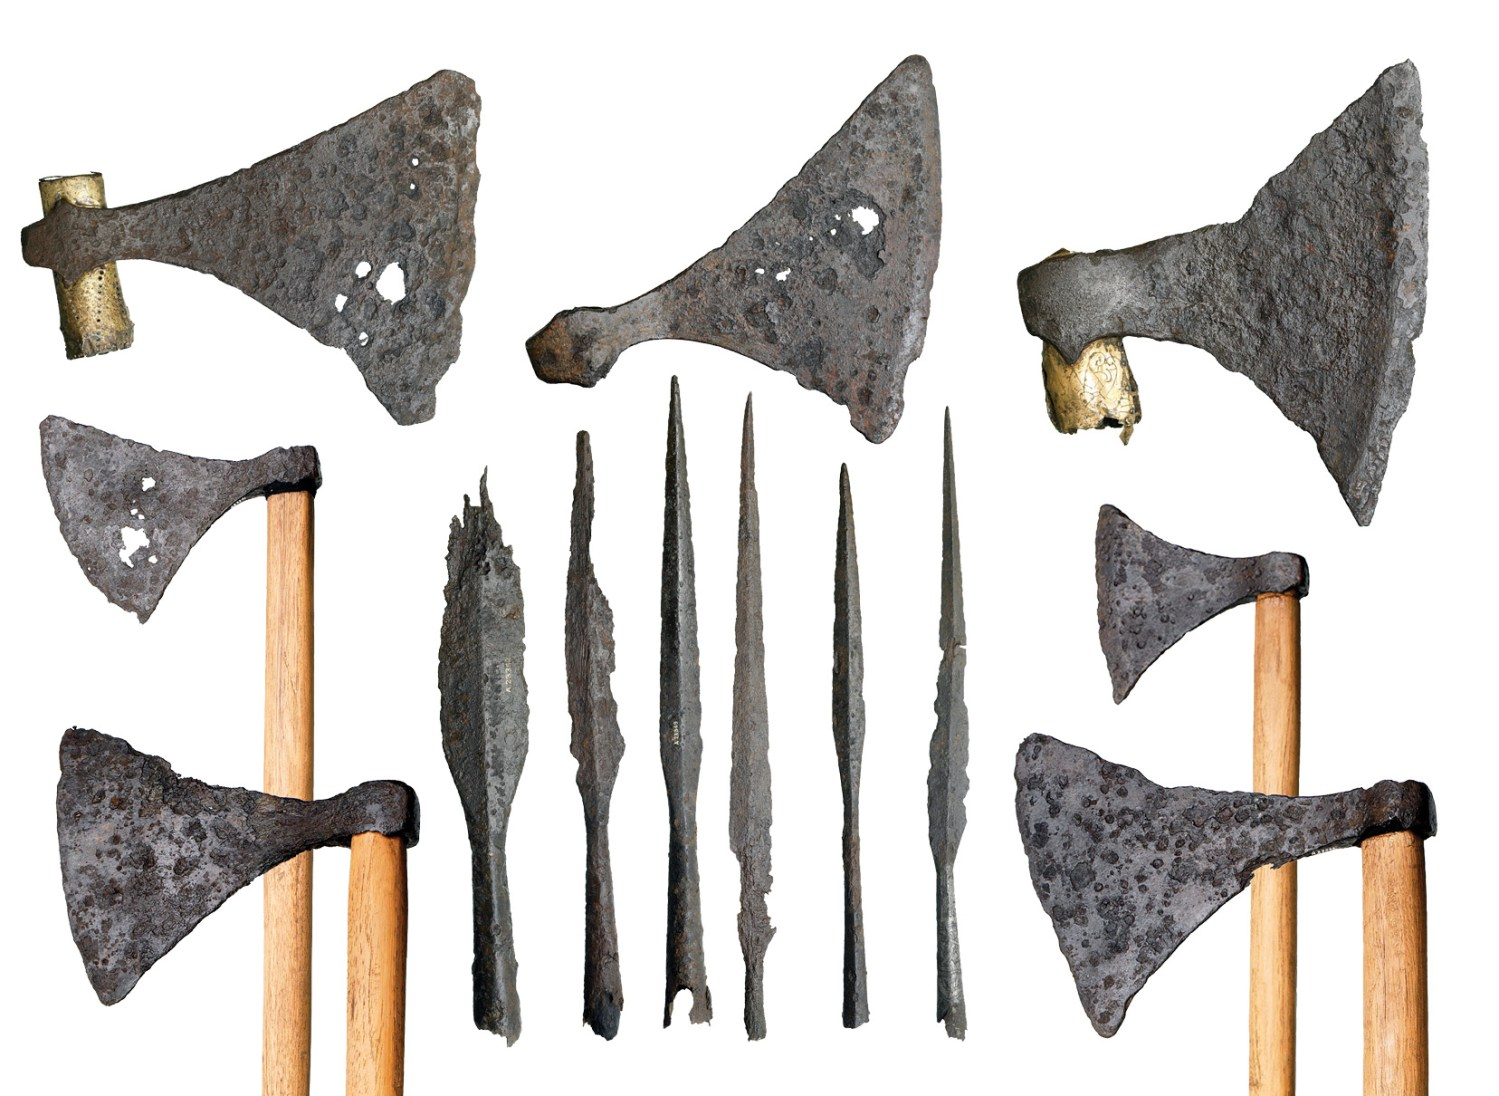 below These axes and spearheads, now on display in the Museum of London, form part of a hoard of Viking weapons and tools that was found close to London Bridge and may have belonged to Cnut's warriors.